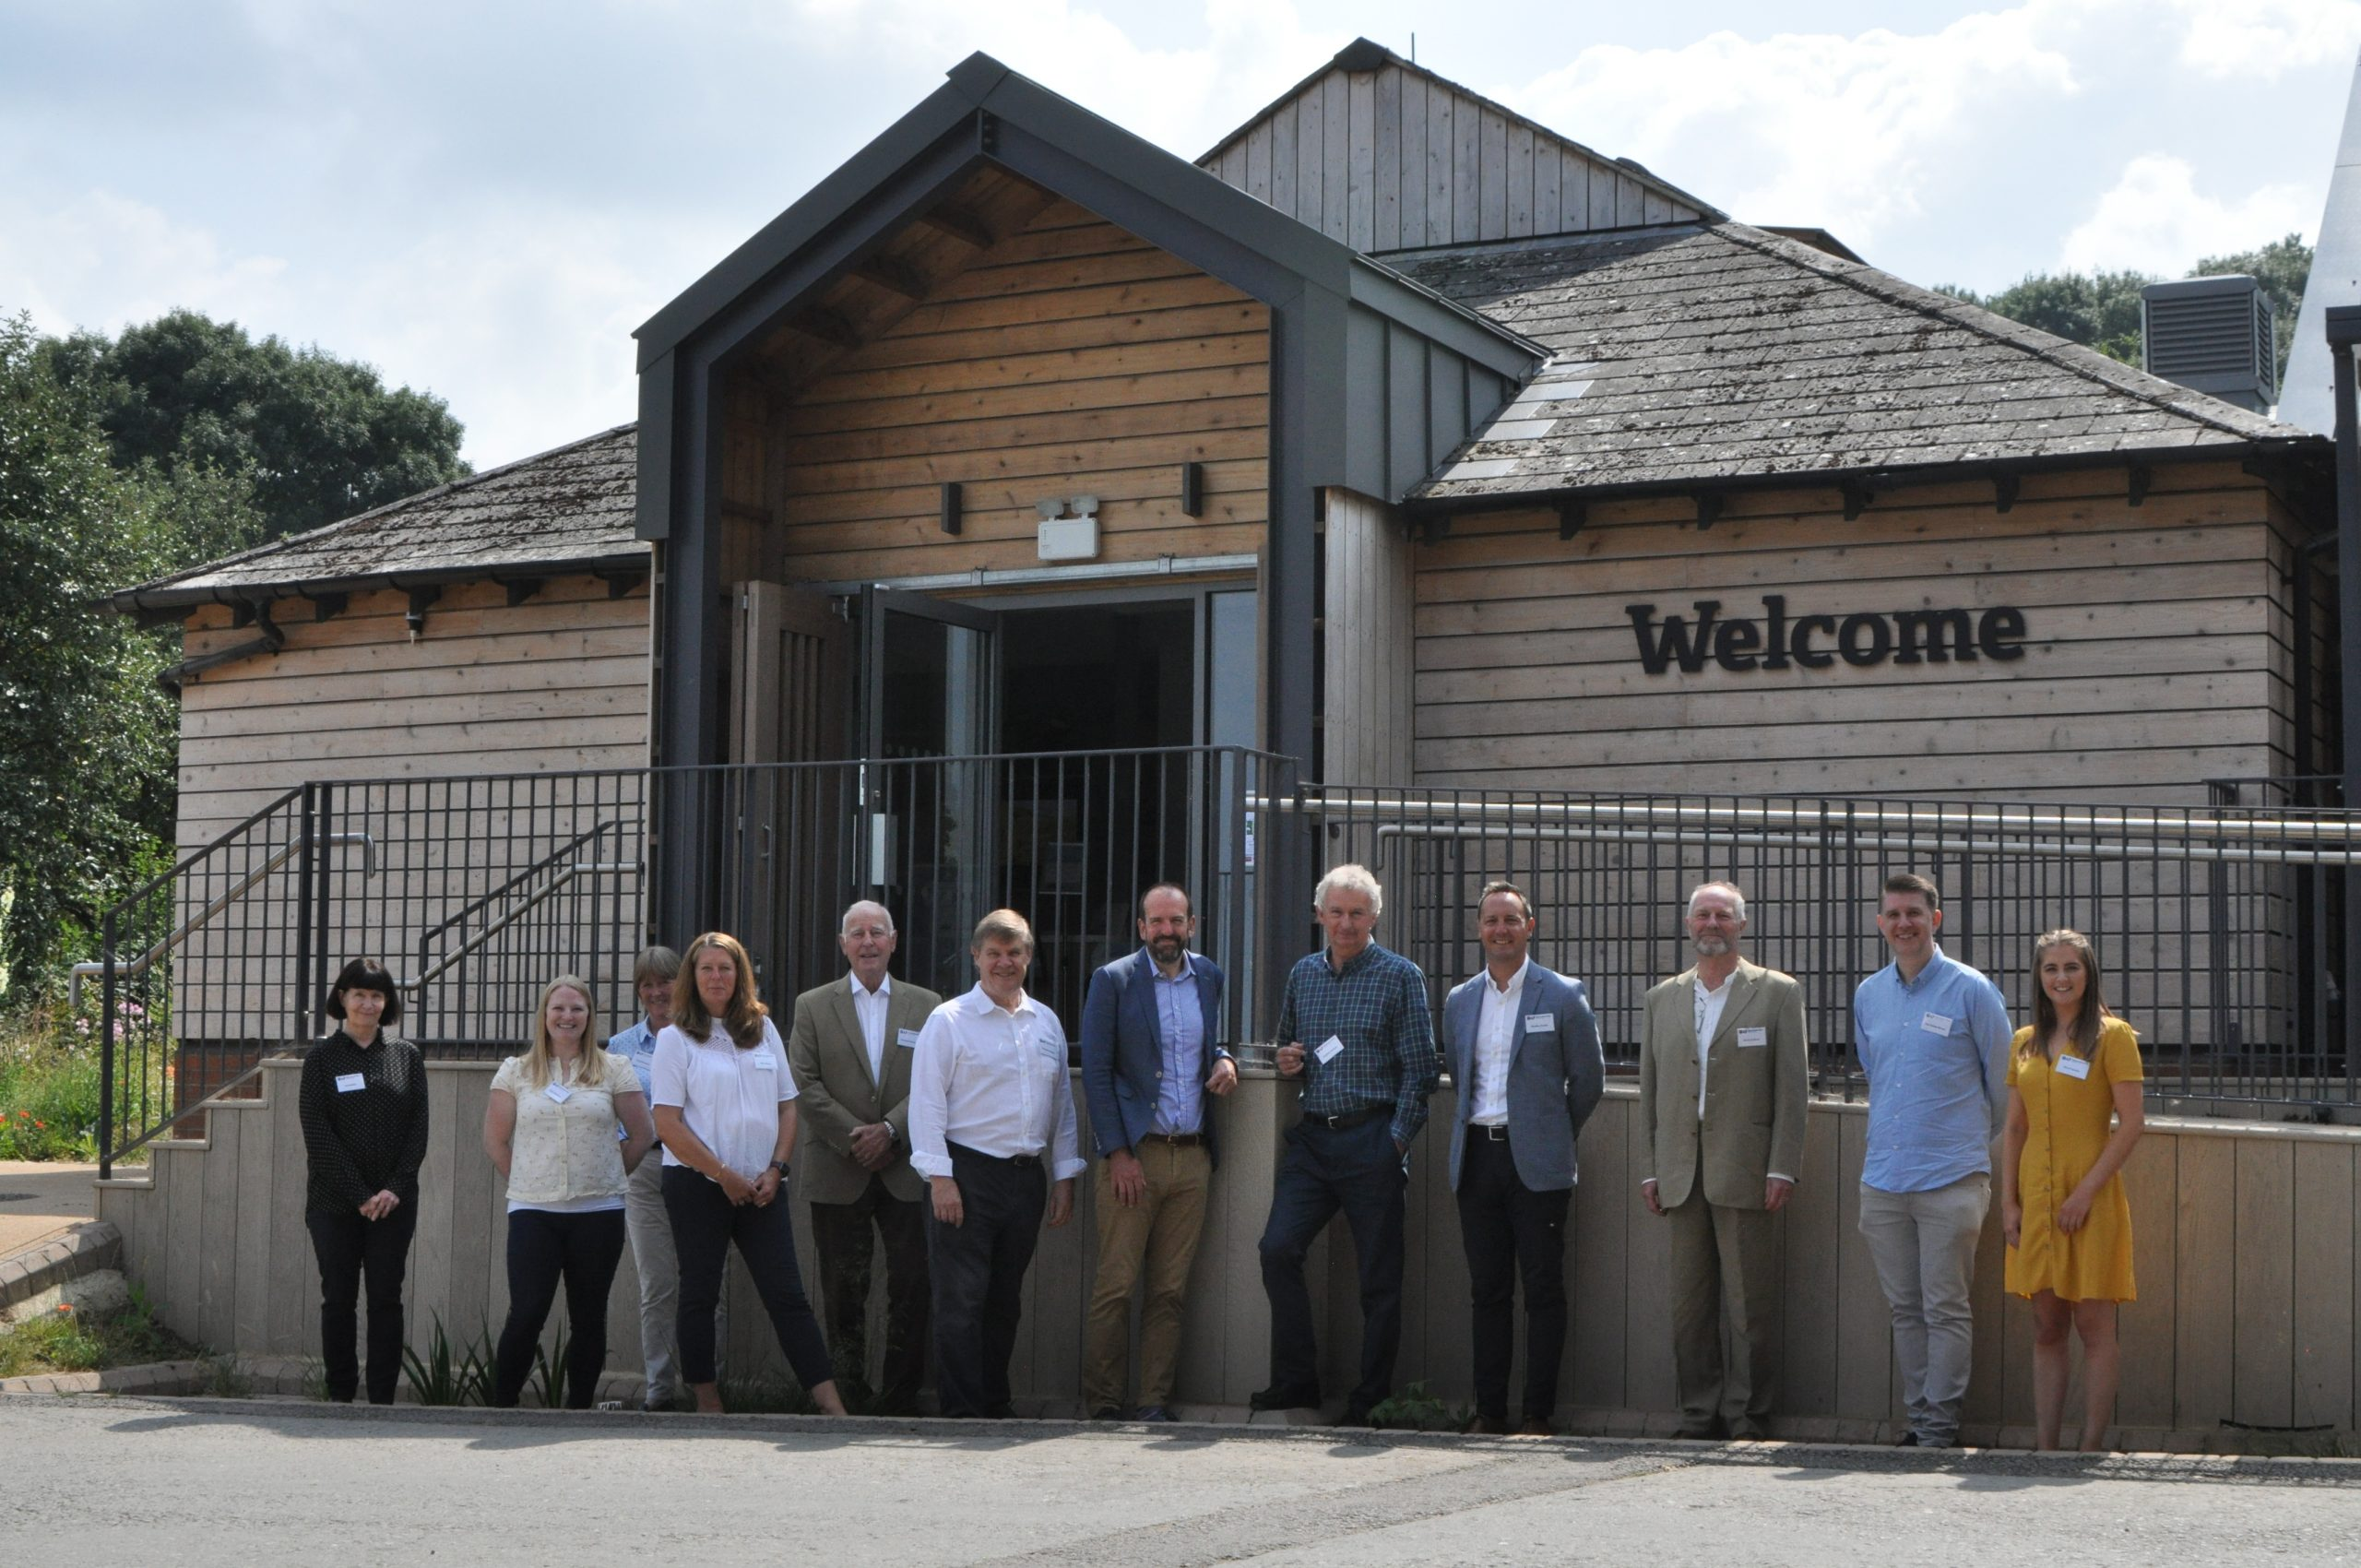 To mark the significant landmark, members of the Grundon team visited the brand new GWT headquarters at Robinswood Hill, Gloucester.